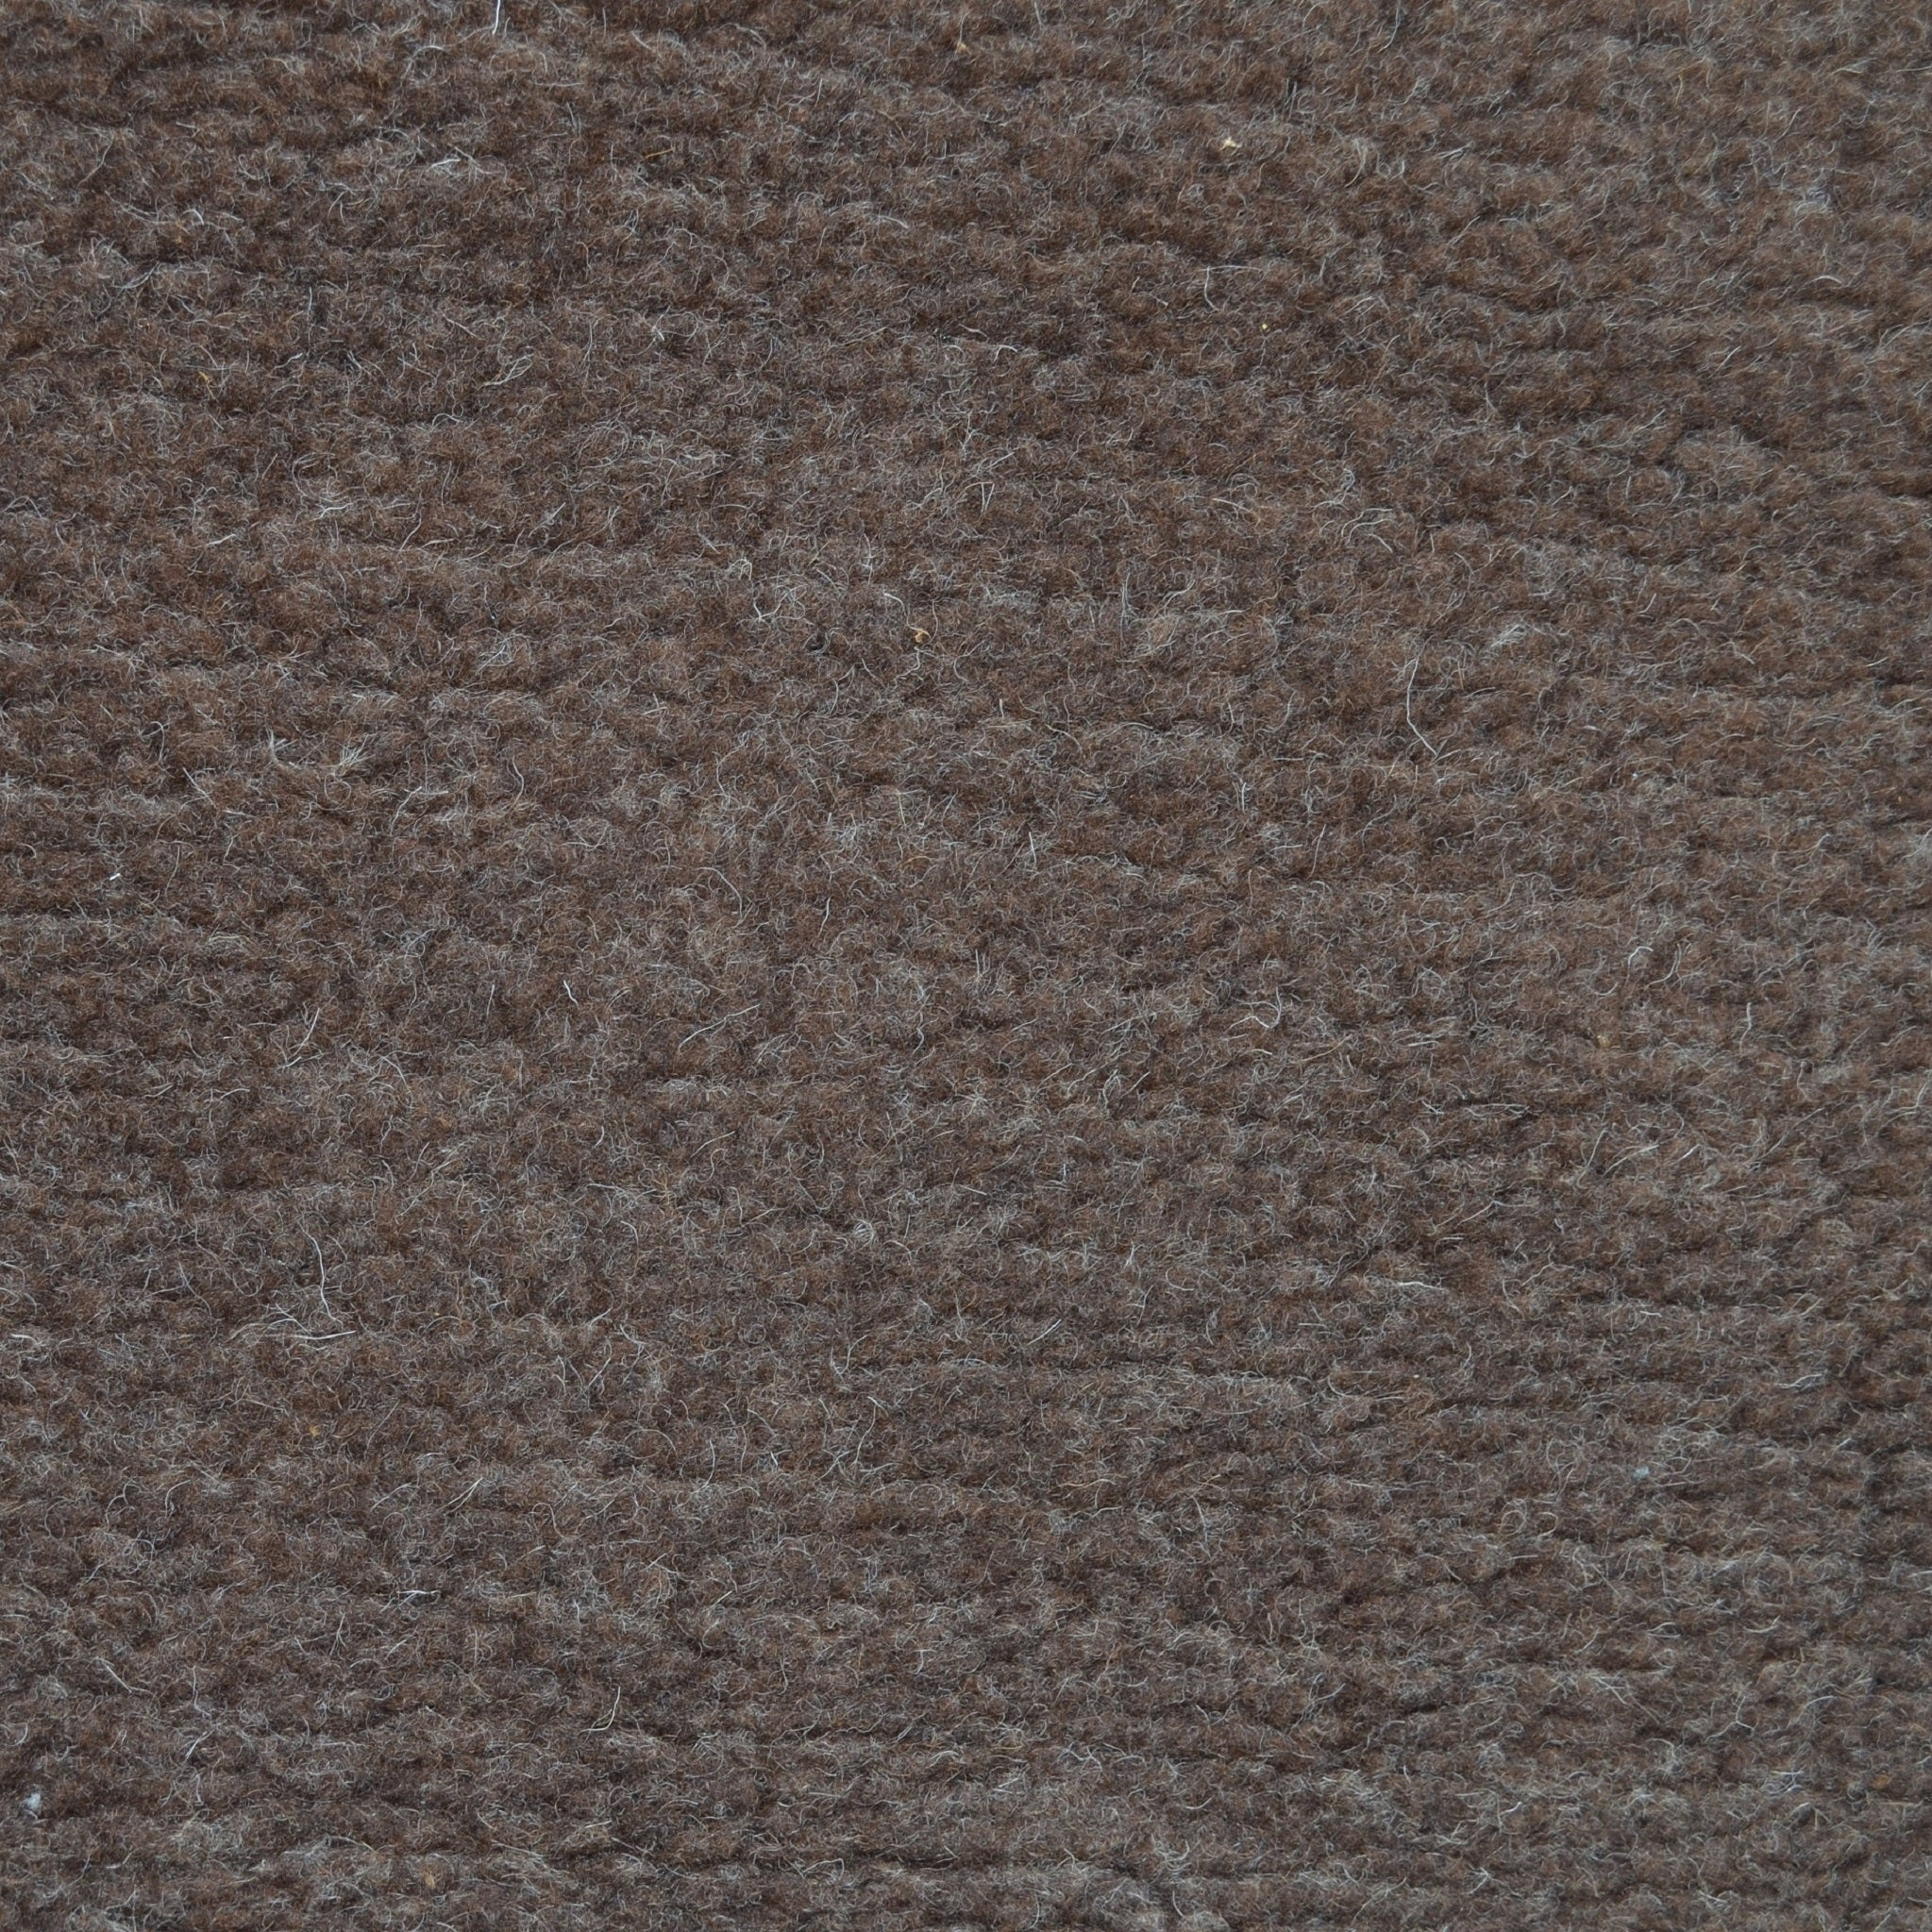 Woolly Brown waterproof fabric for dog beds